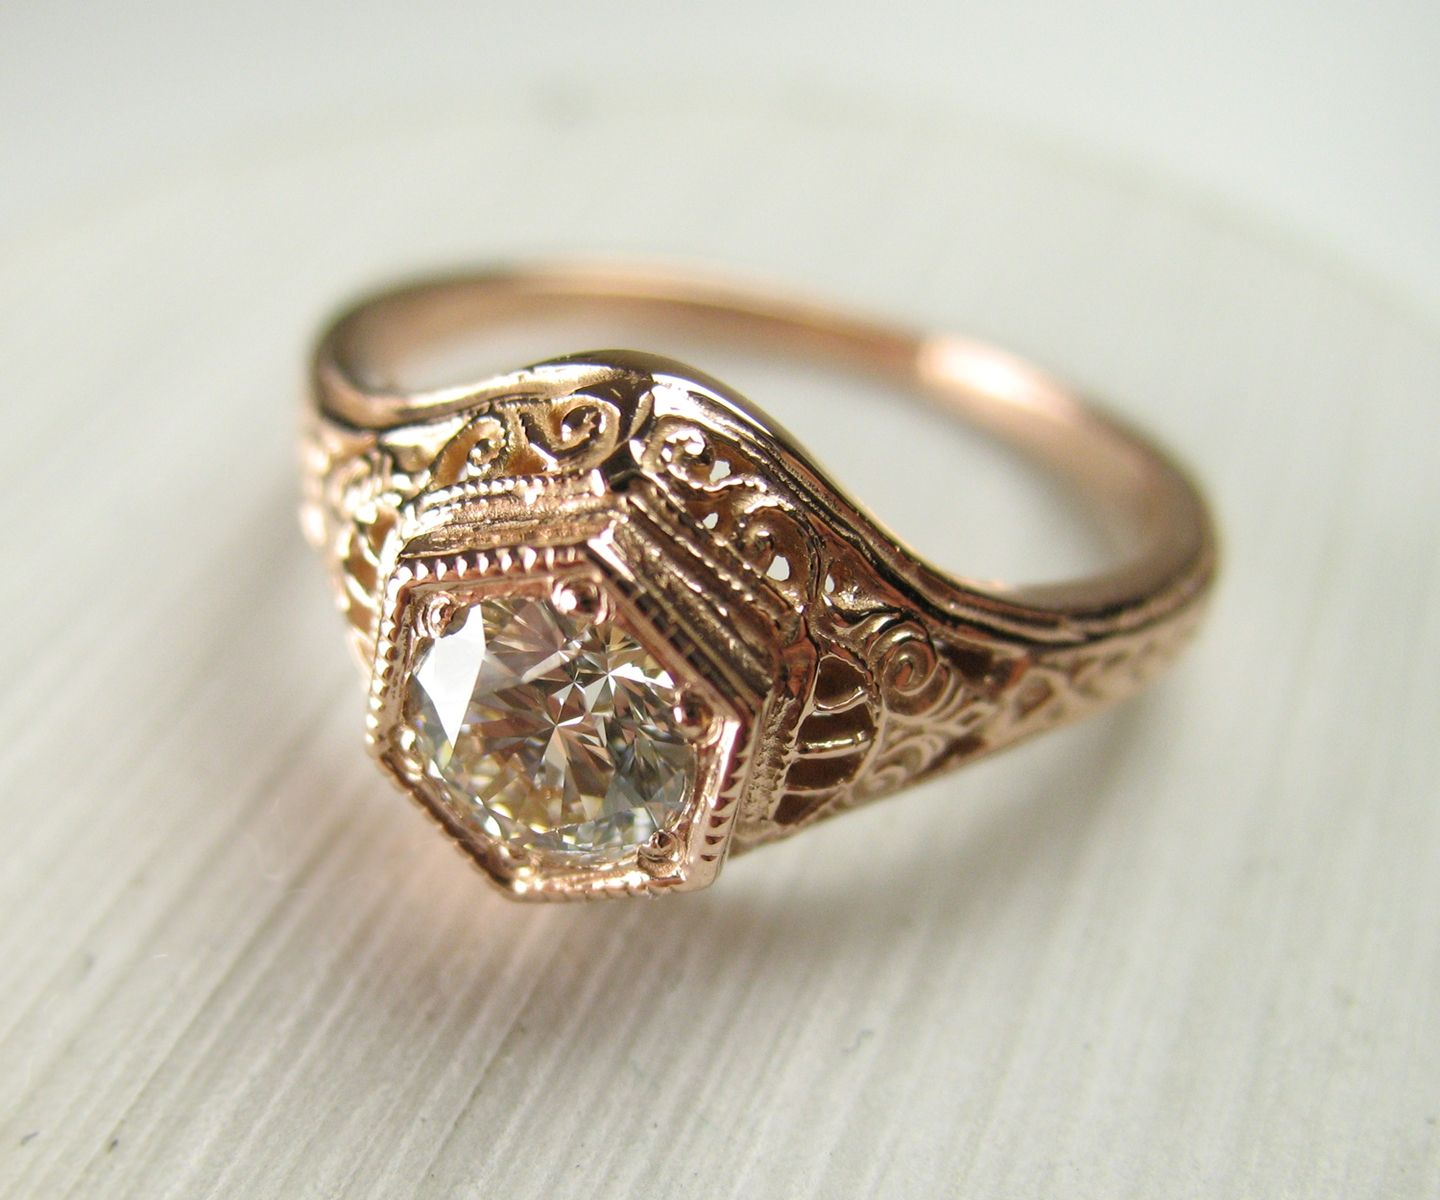 Buy A Hand Crafted Filigree Antique Vintage Engagement